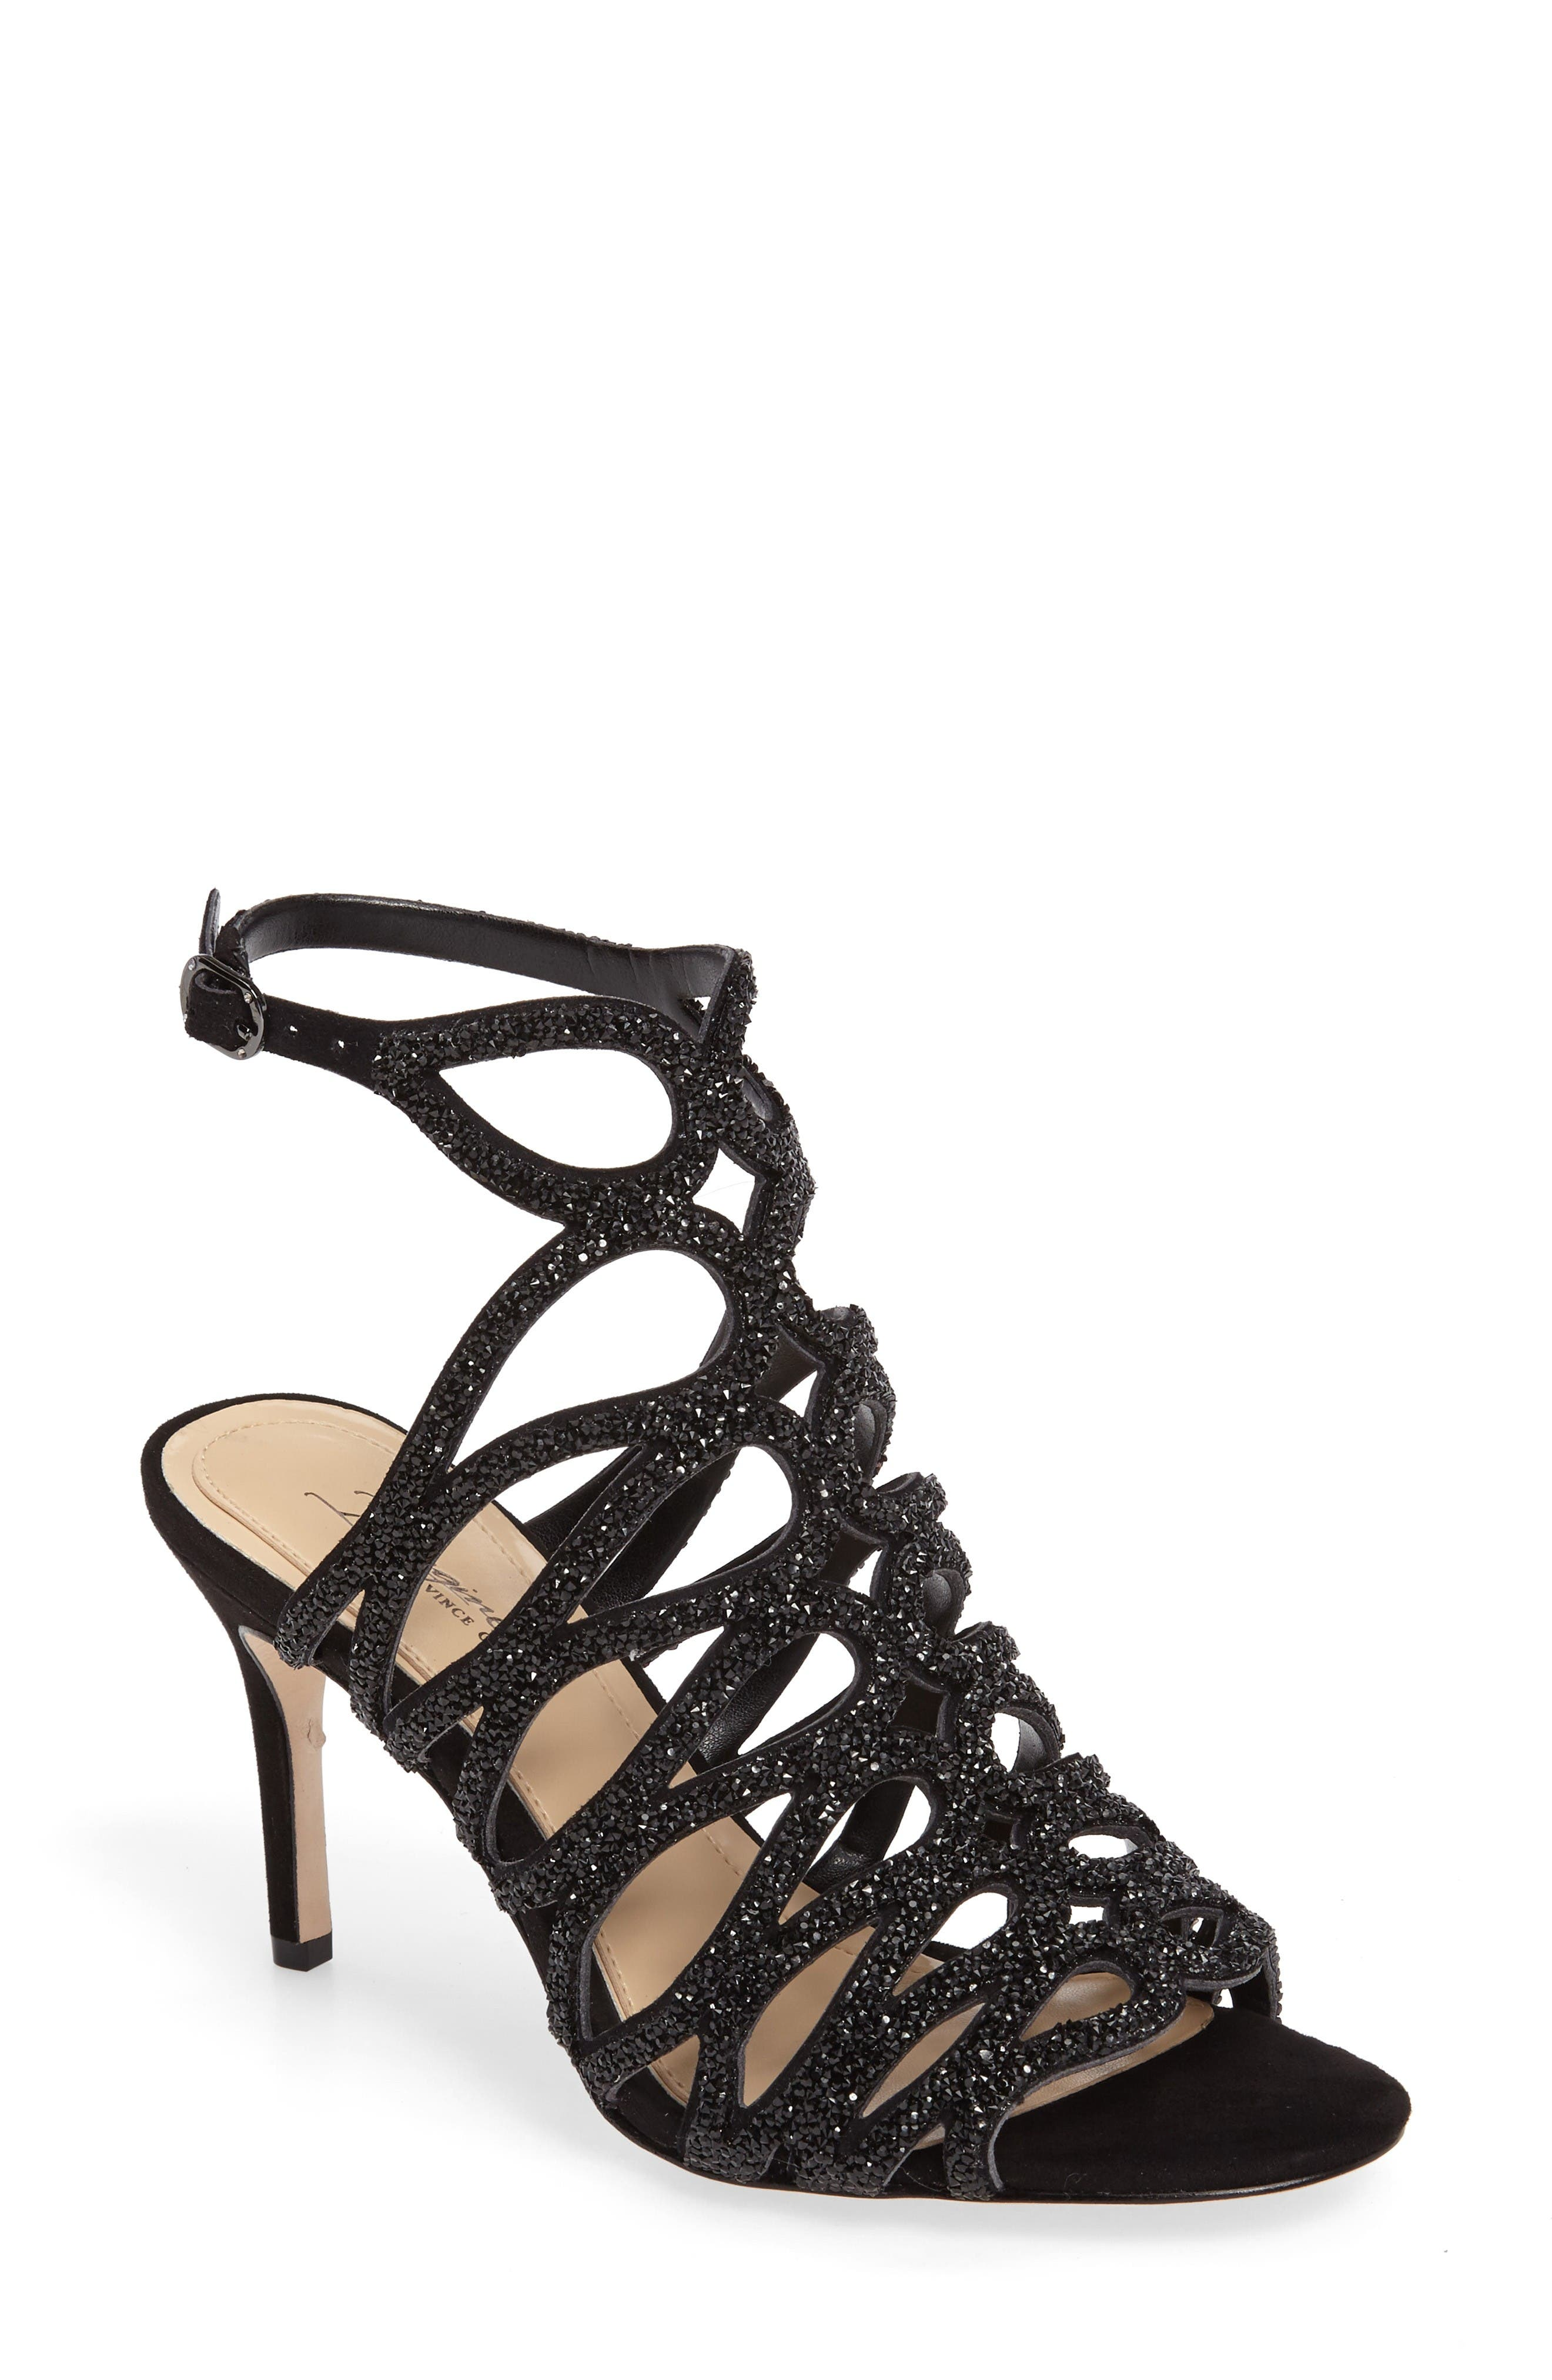 Alternate Image 1 Selected - Imagine by Vince Camuto Plash Glitter Cage Sandal (Women)